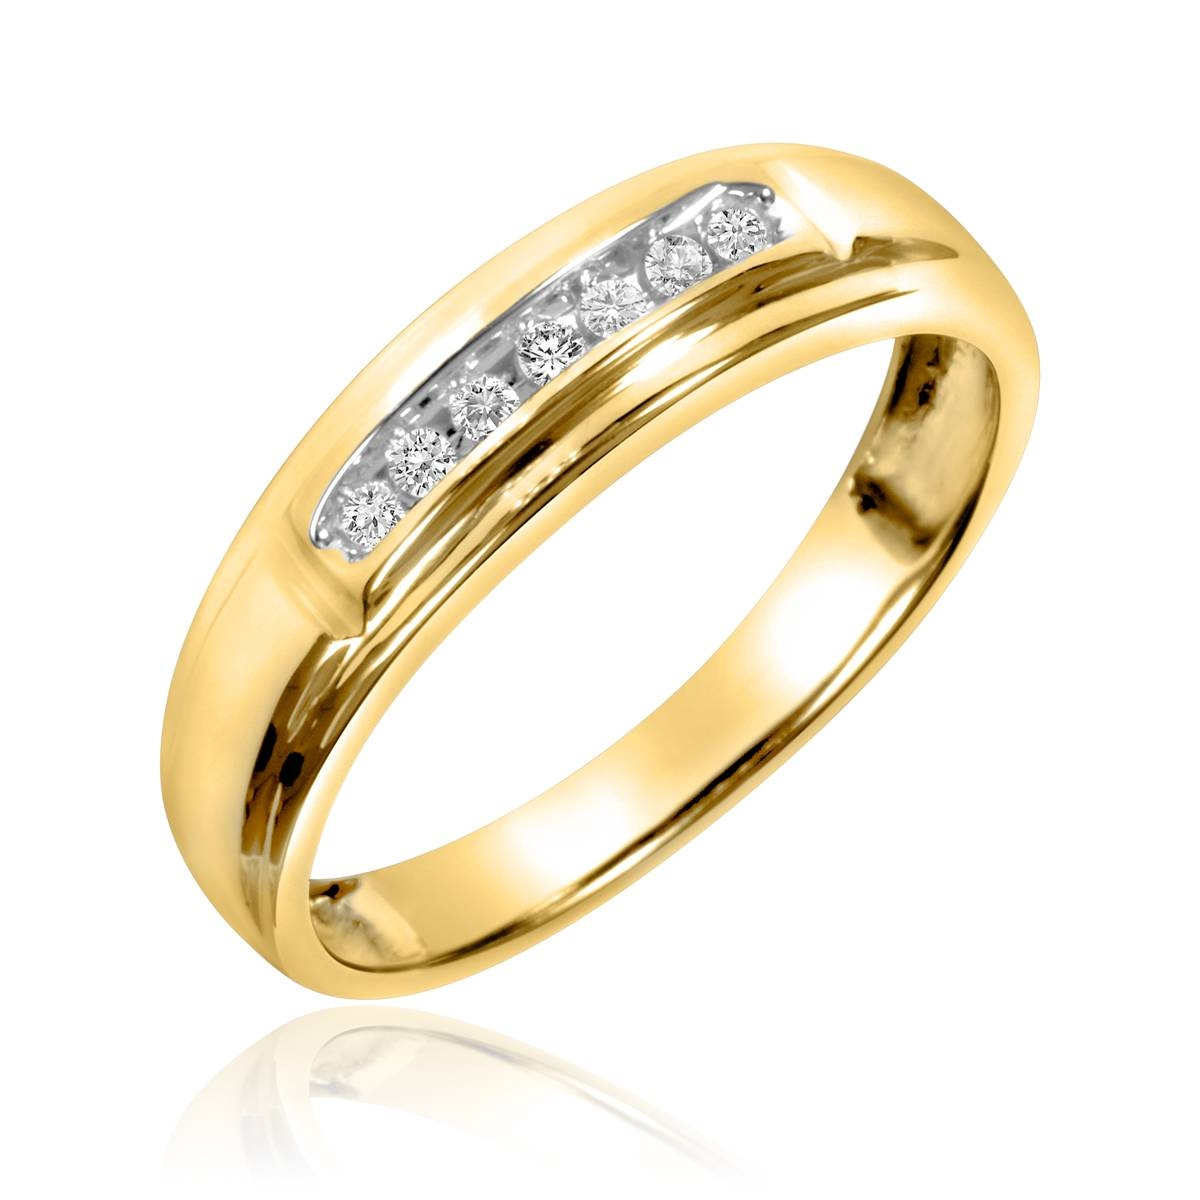 Engraved Gold Wedding Bands Trendy Sea Of Diamonds Sea Of